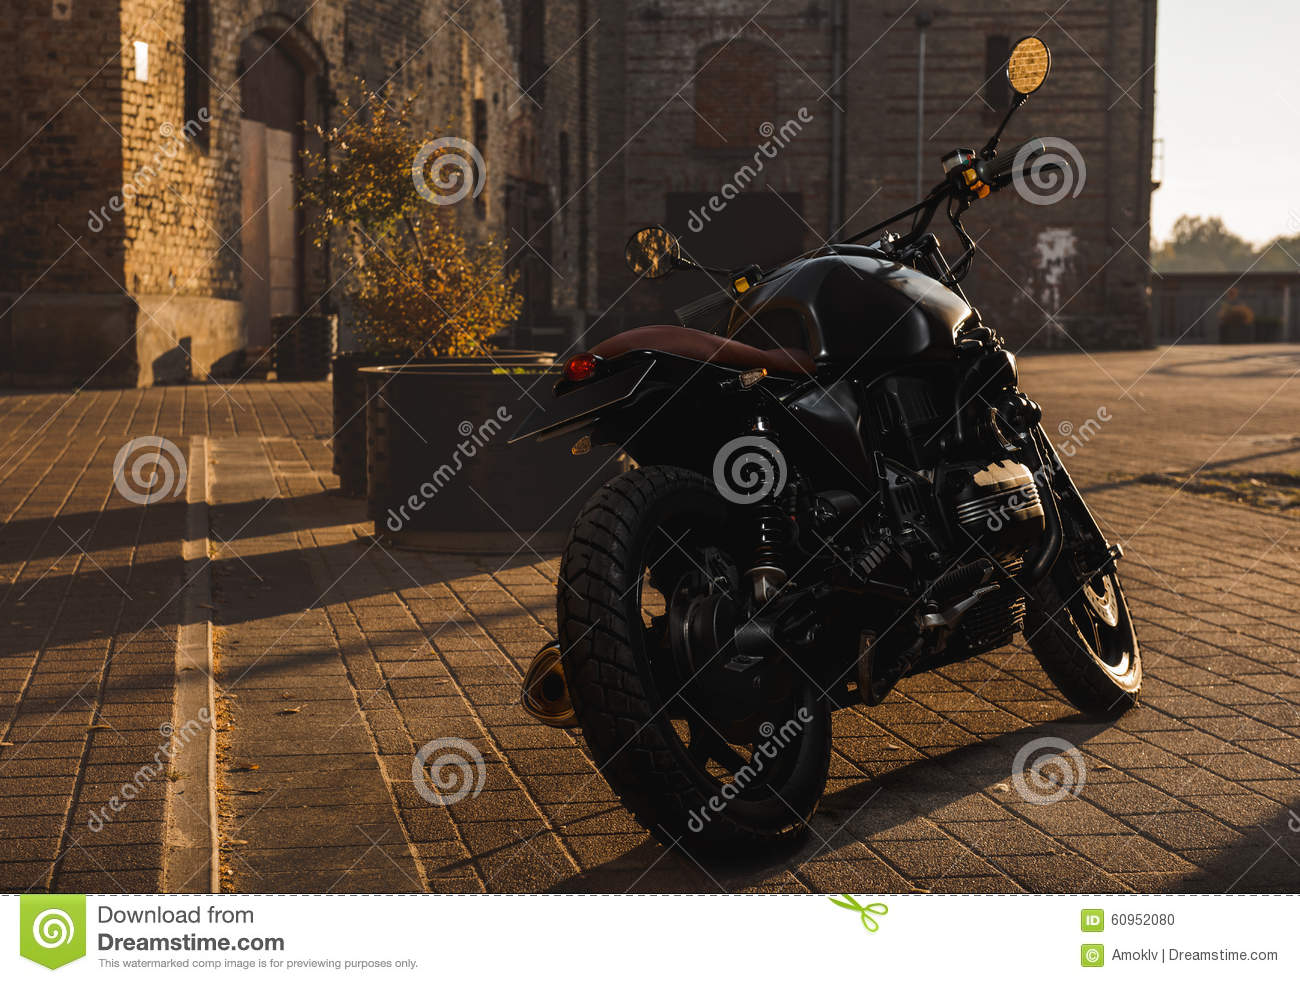 Cafe-racer motorcycle